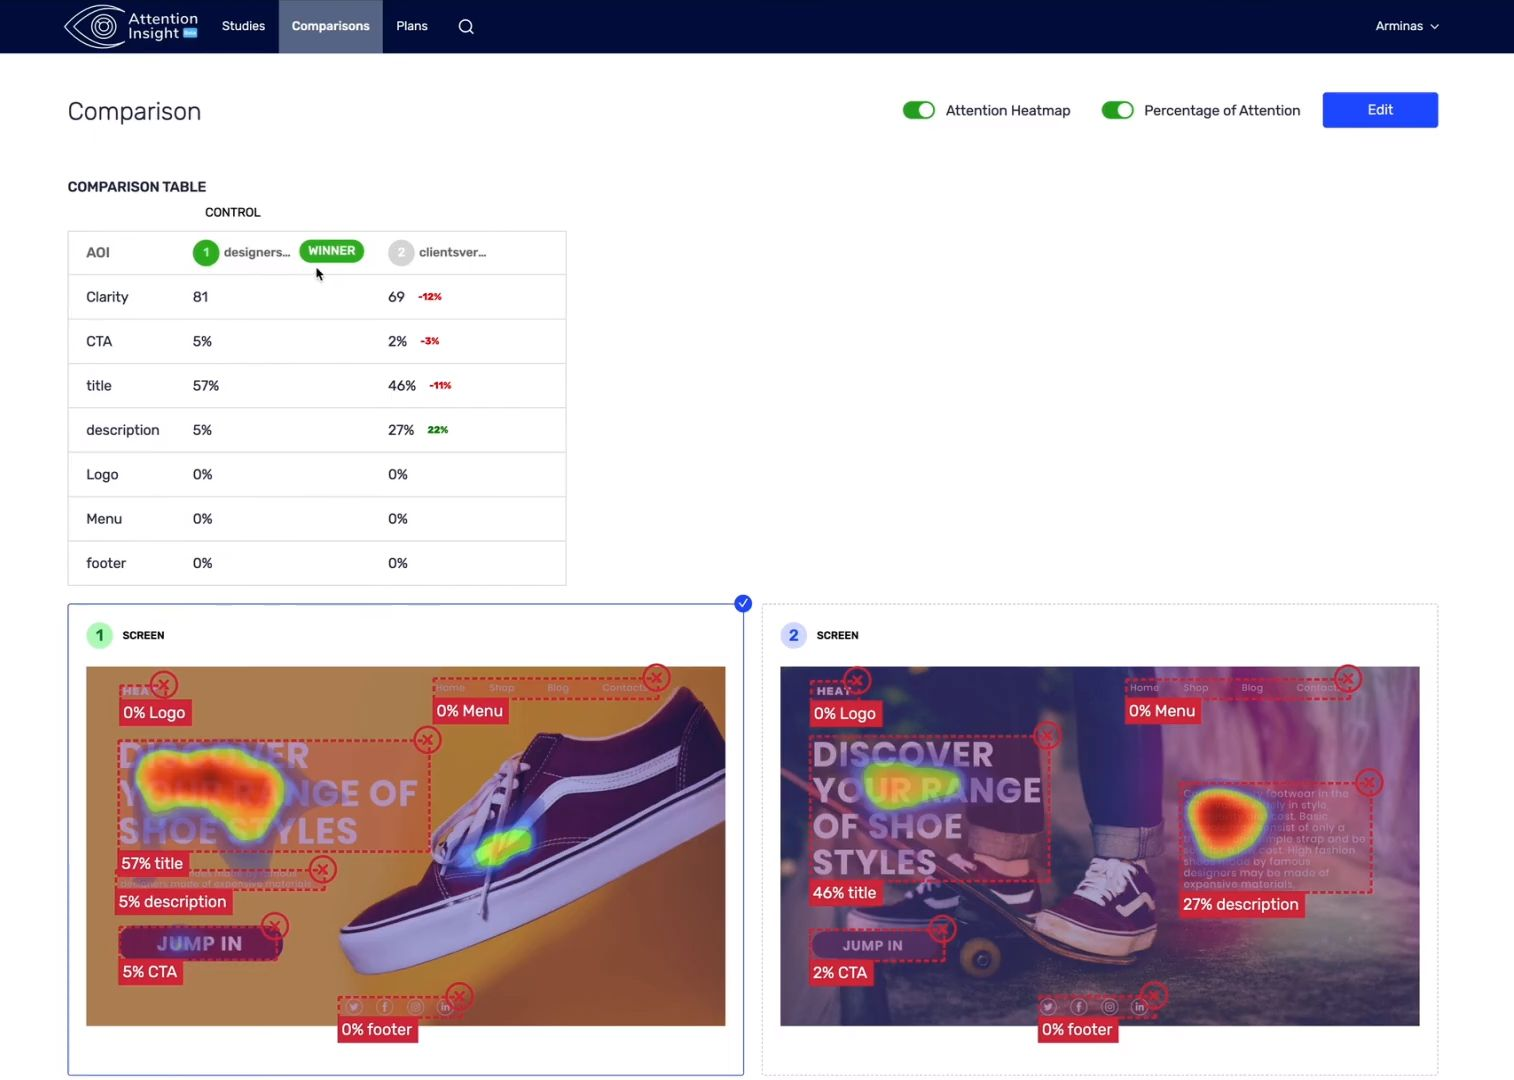 Predictive Eye-tracking A/B testing of two designs